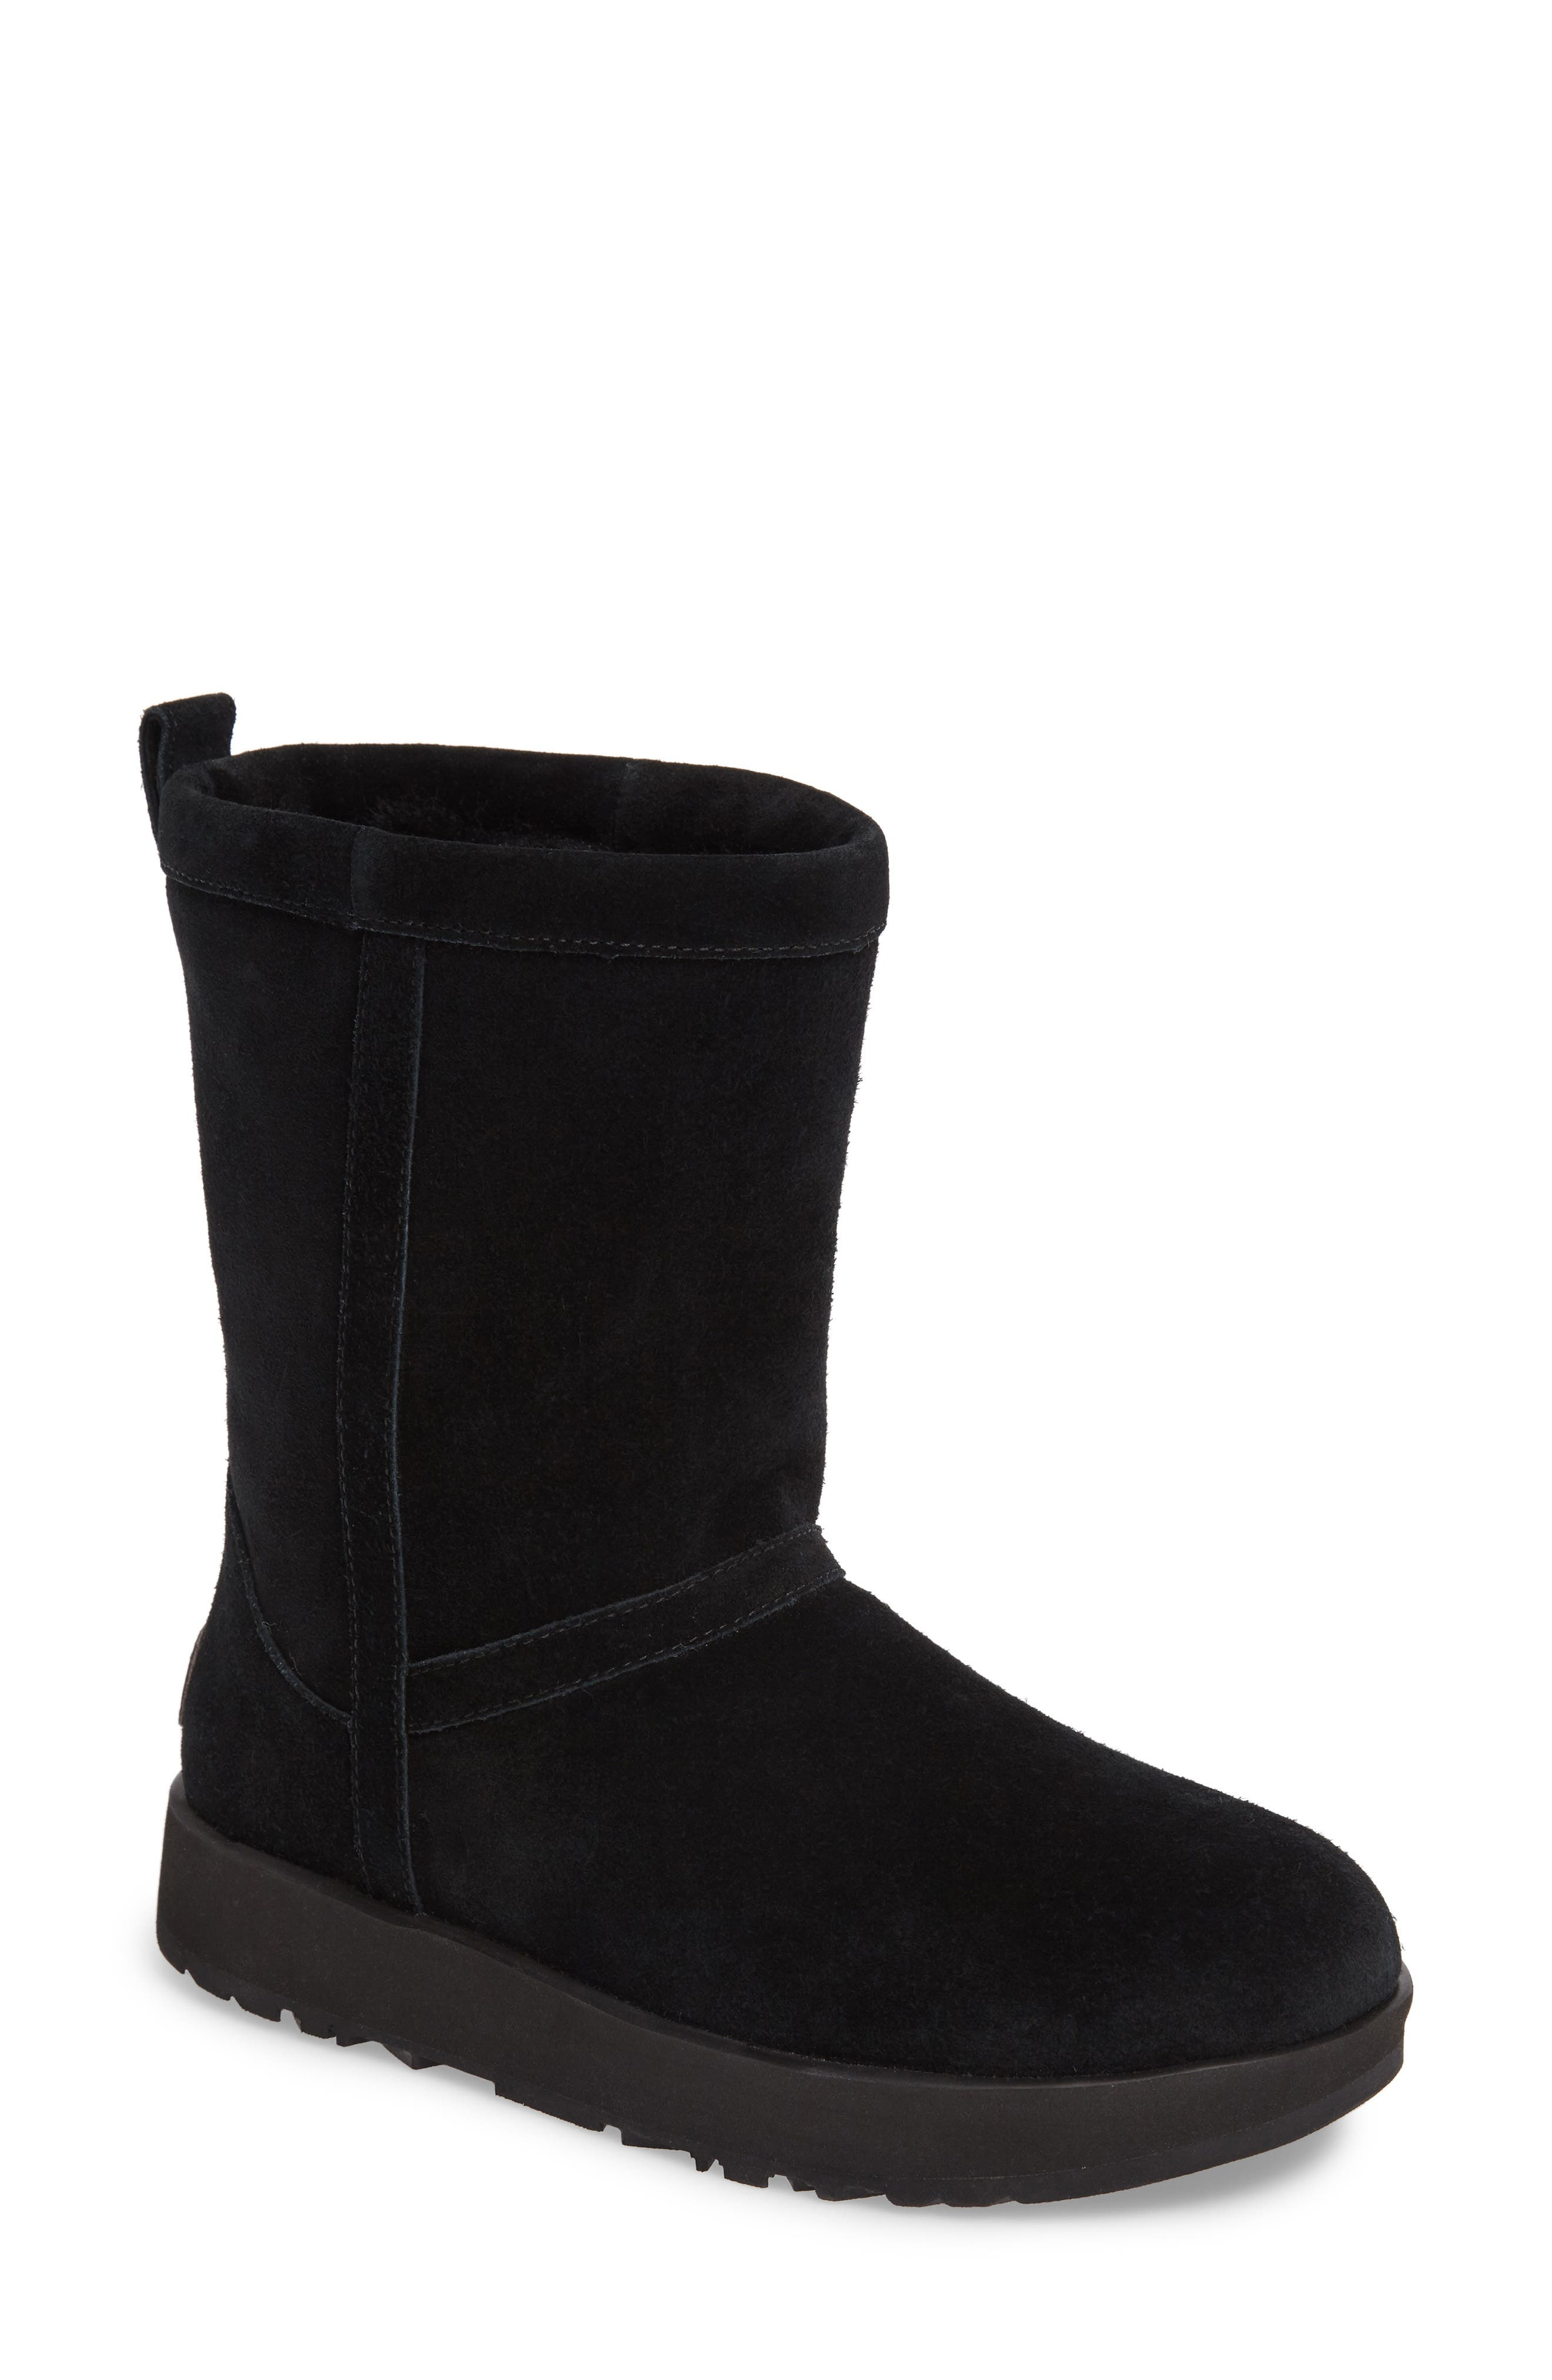 UGG<SUP>®</SUP>, Classic Short Waterproof Boot, Main thumbnail 1, color, BLACK SUEDE